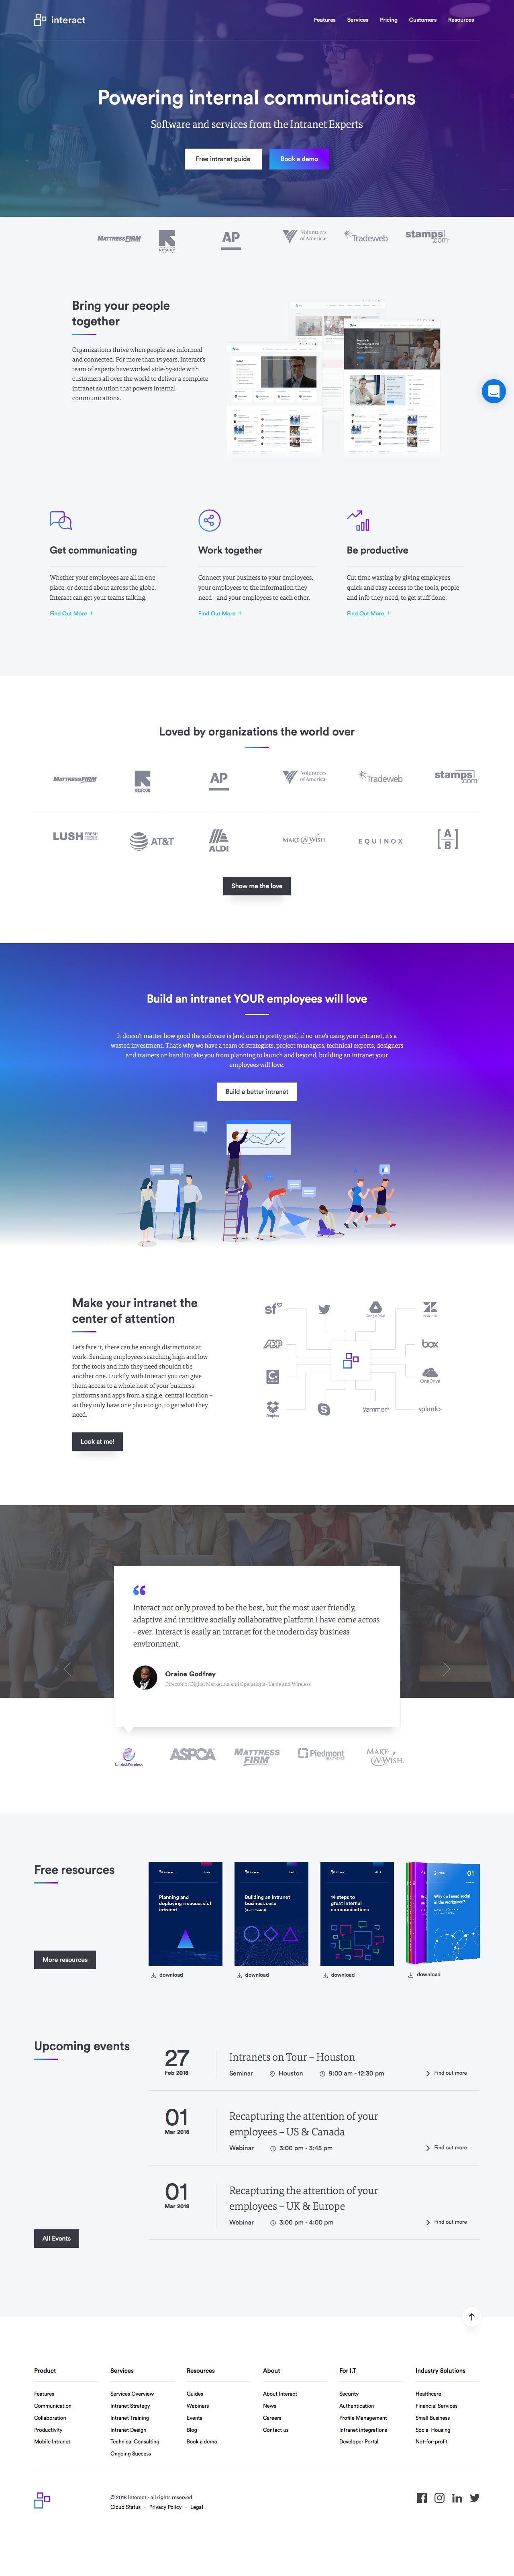 Screenshot of interact-intranet.com - Intranet software that brings people together | Interact Software - captured Feb. 27, 2018